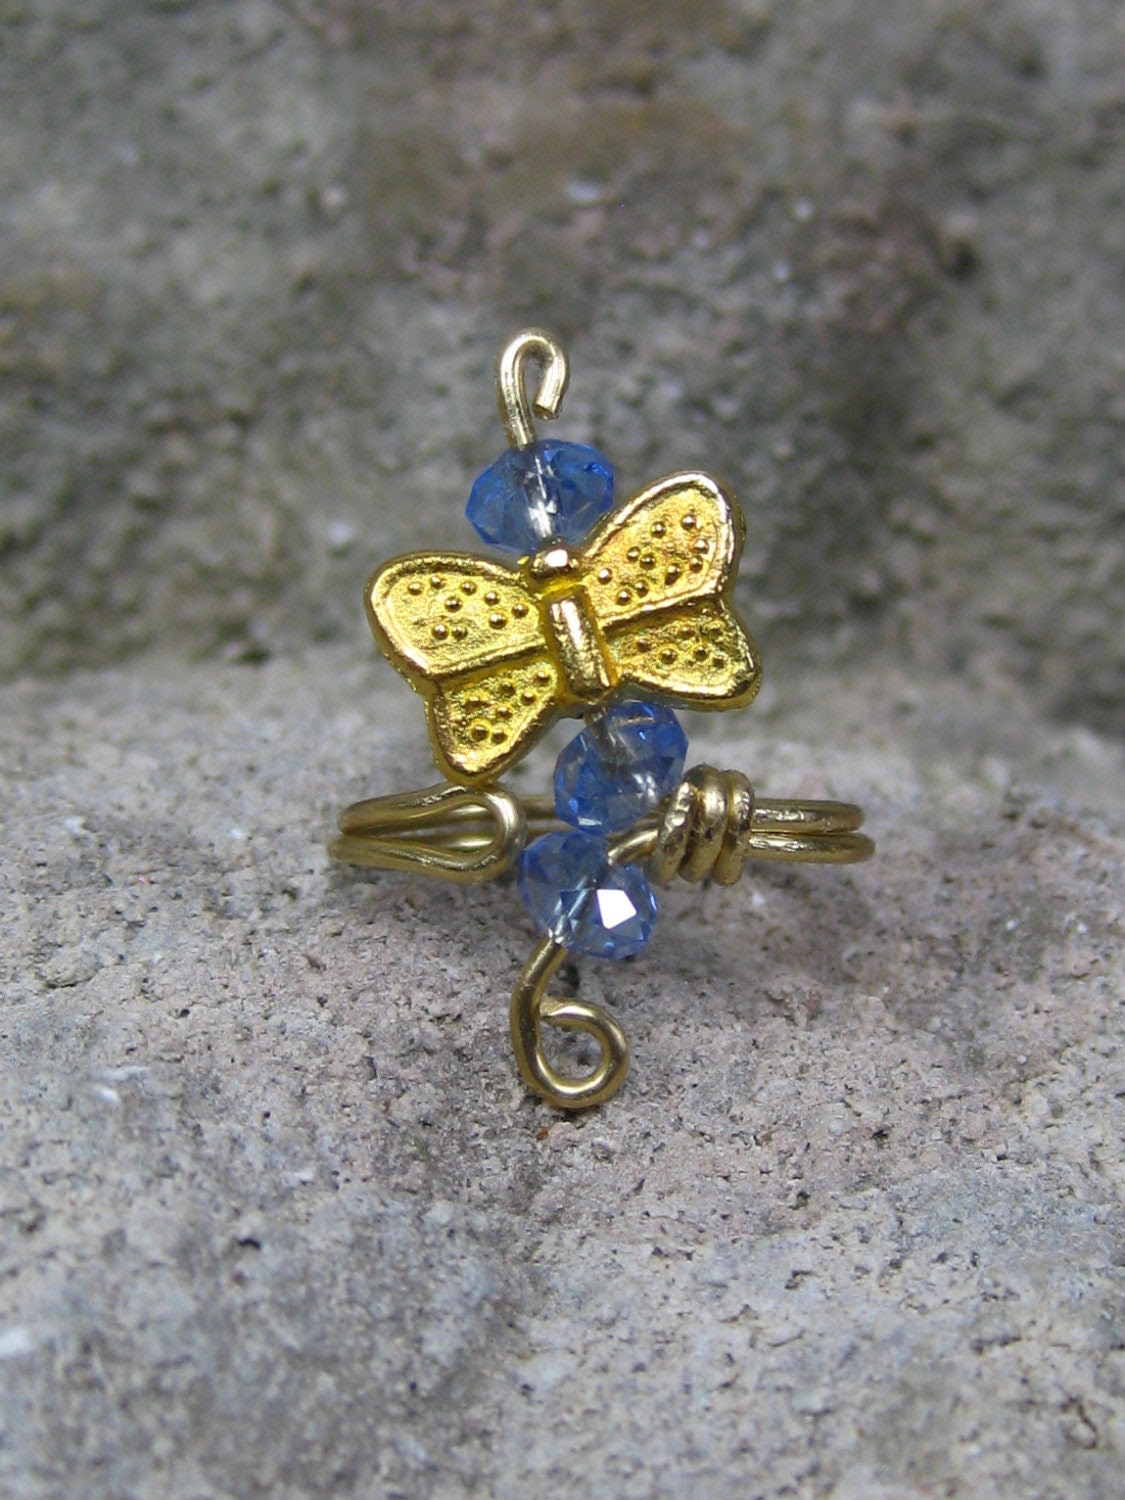 Toe-dally Butterfly Toe Ring, size 6 adjustable toe ring, blue crystals and a butterfly are perfect for summer foot jewelry